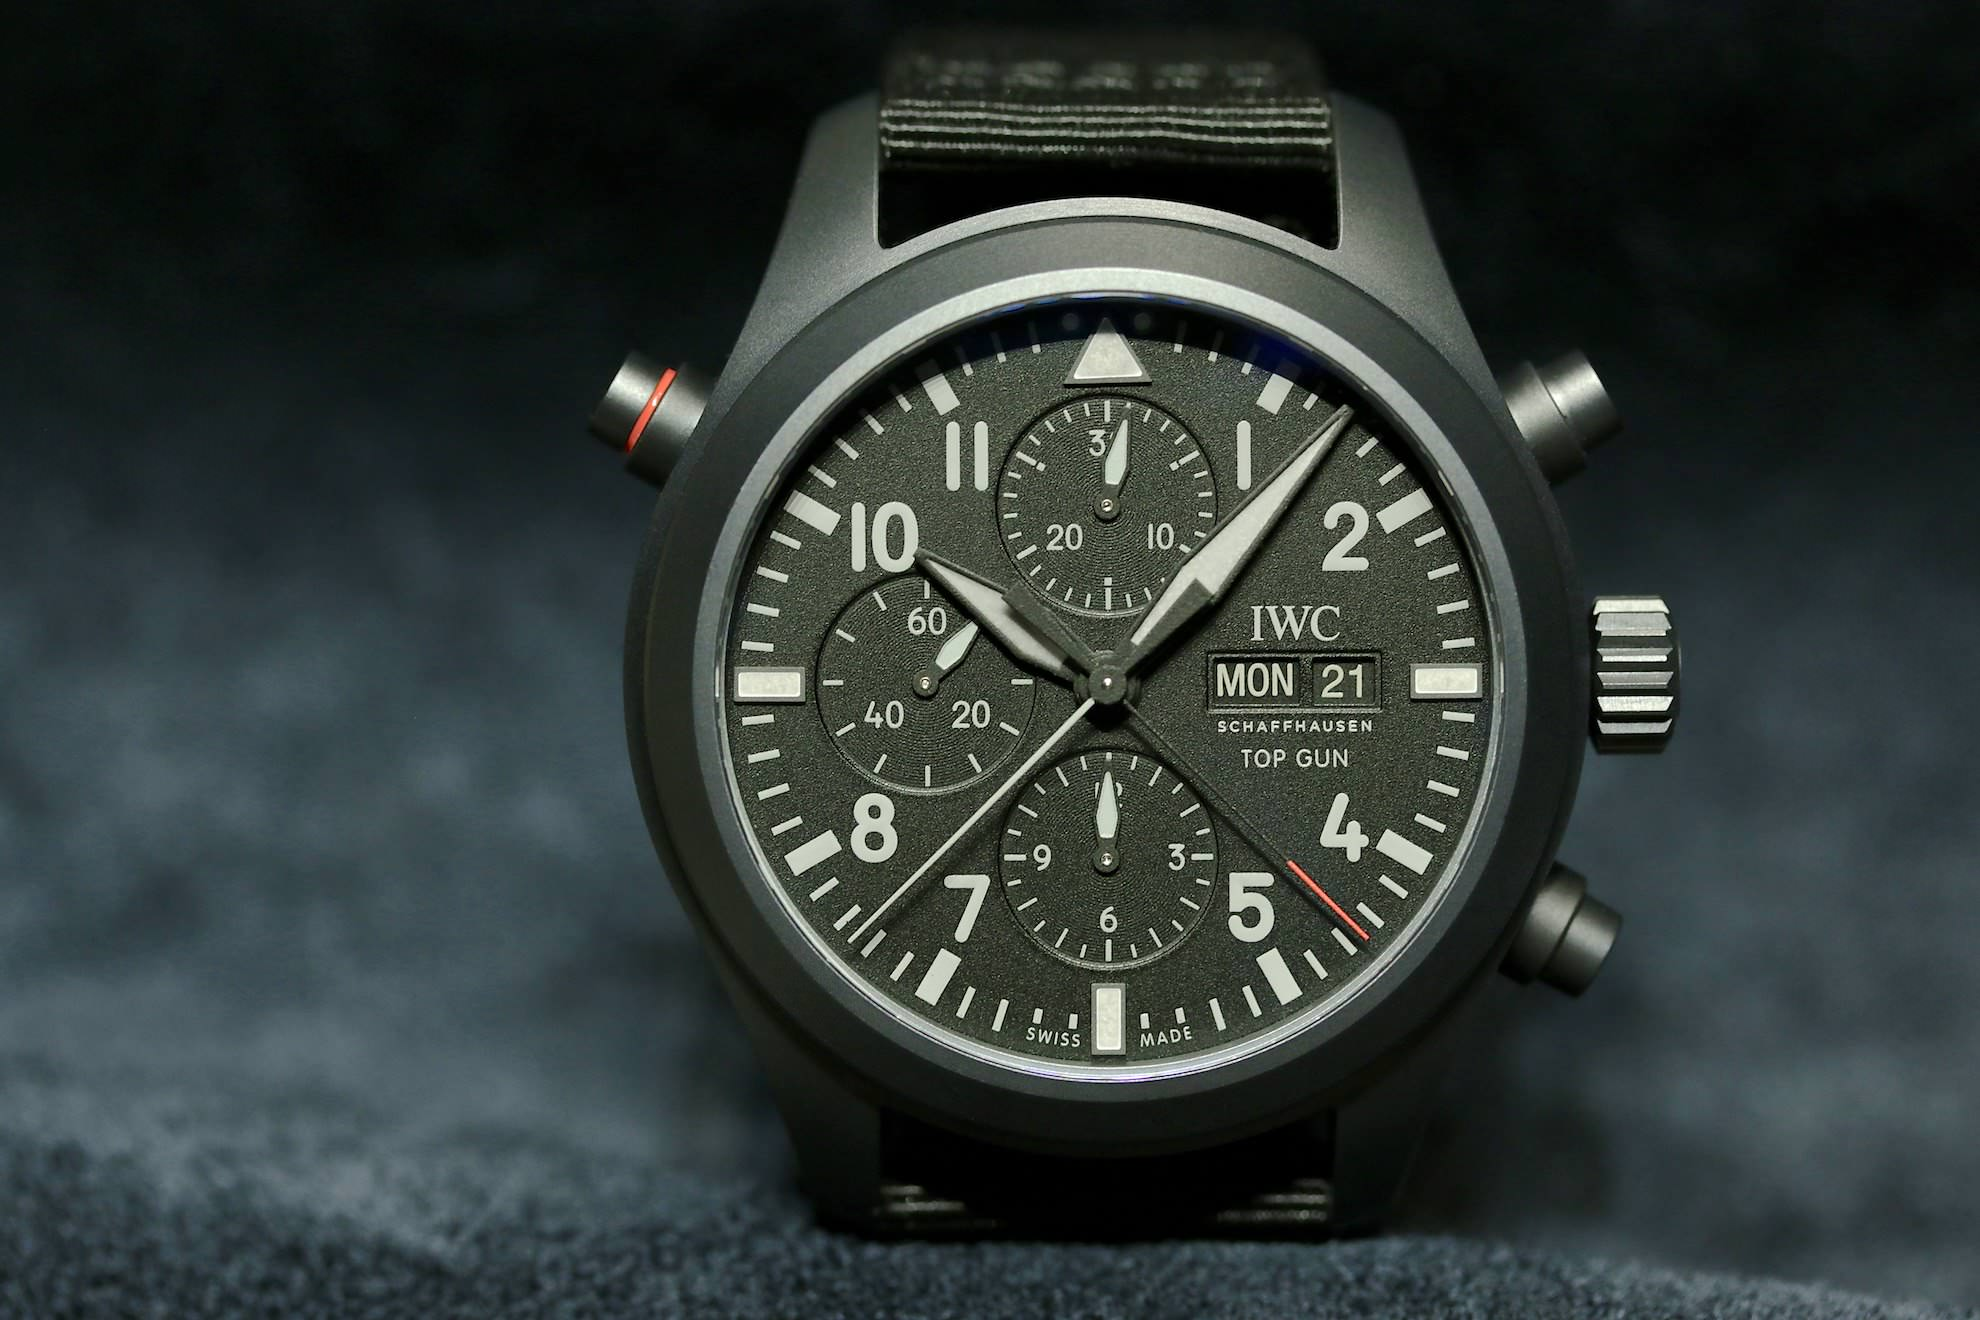 IWC_Pilots_Watch_Double_Chronograph_Top_Gun_Ceratanium_1